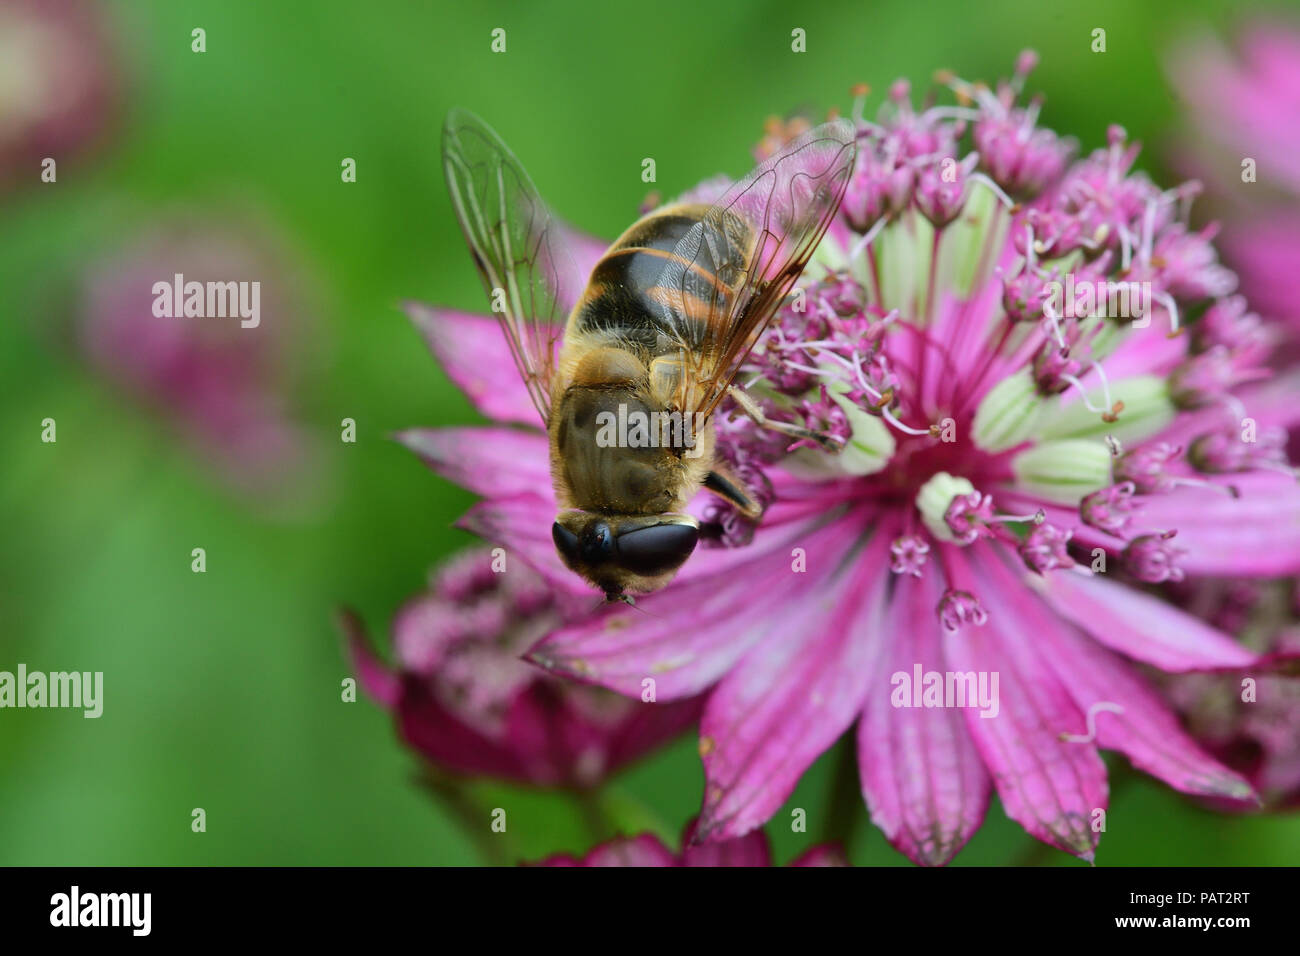 Macro shot of a bee pollinating an astrantia flower in - Stock Image